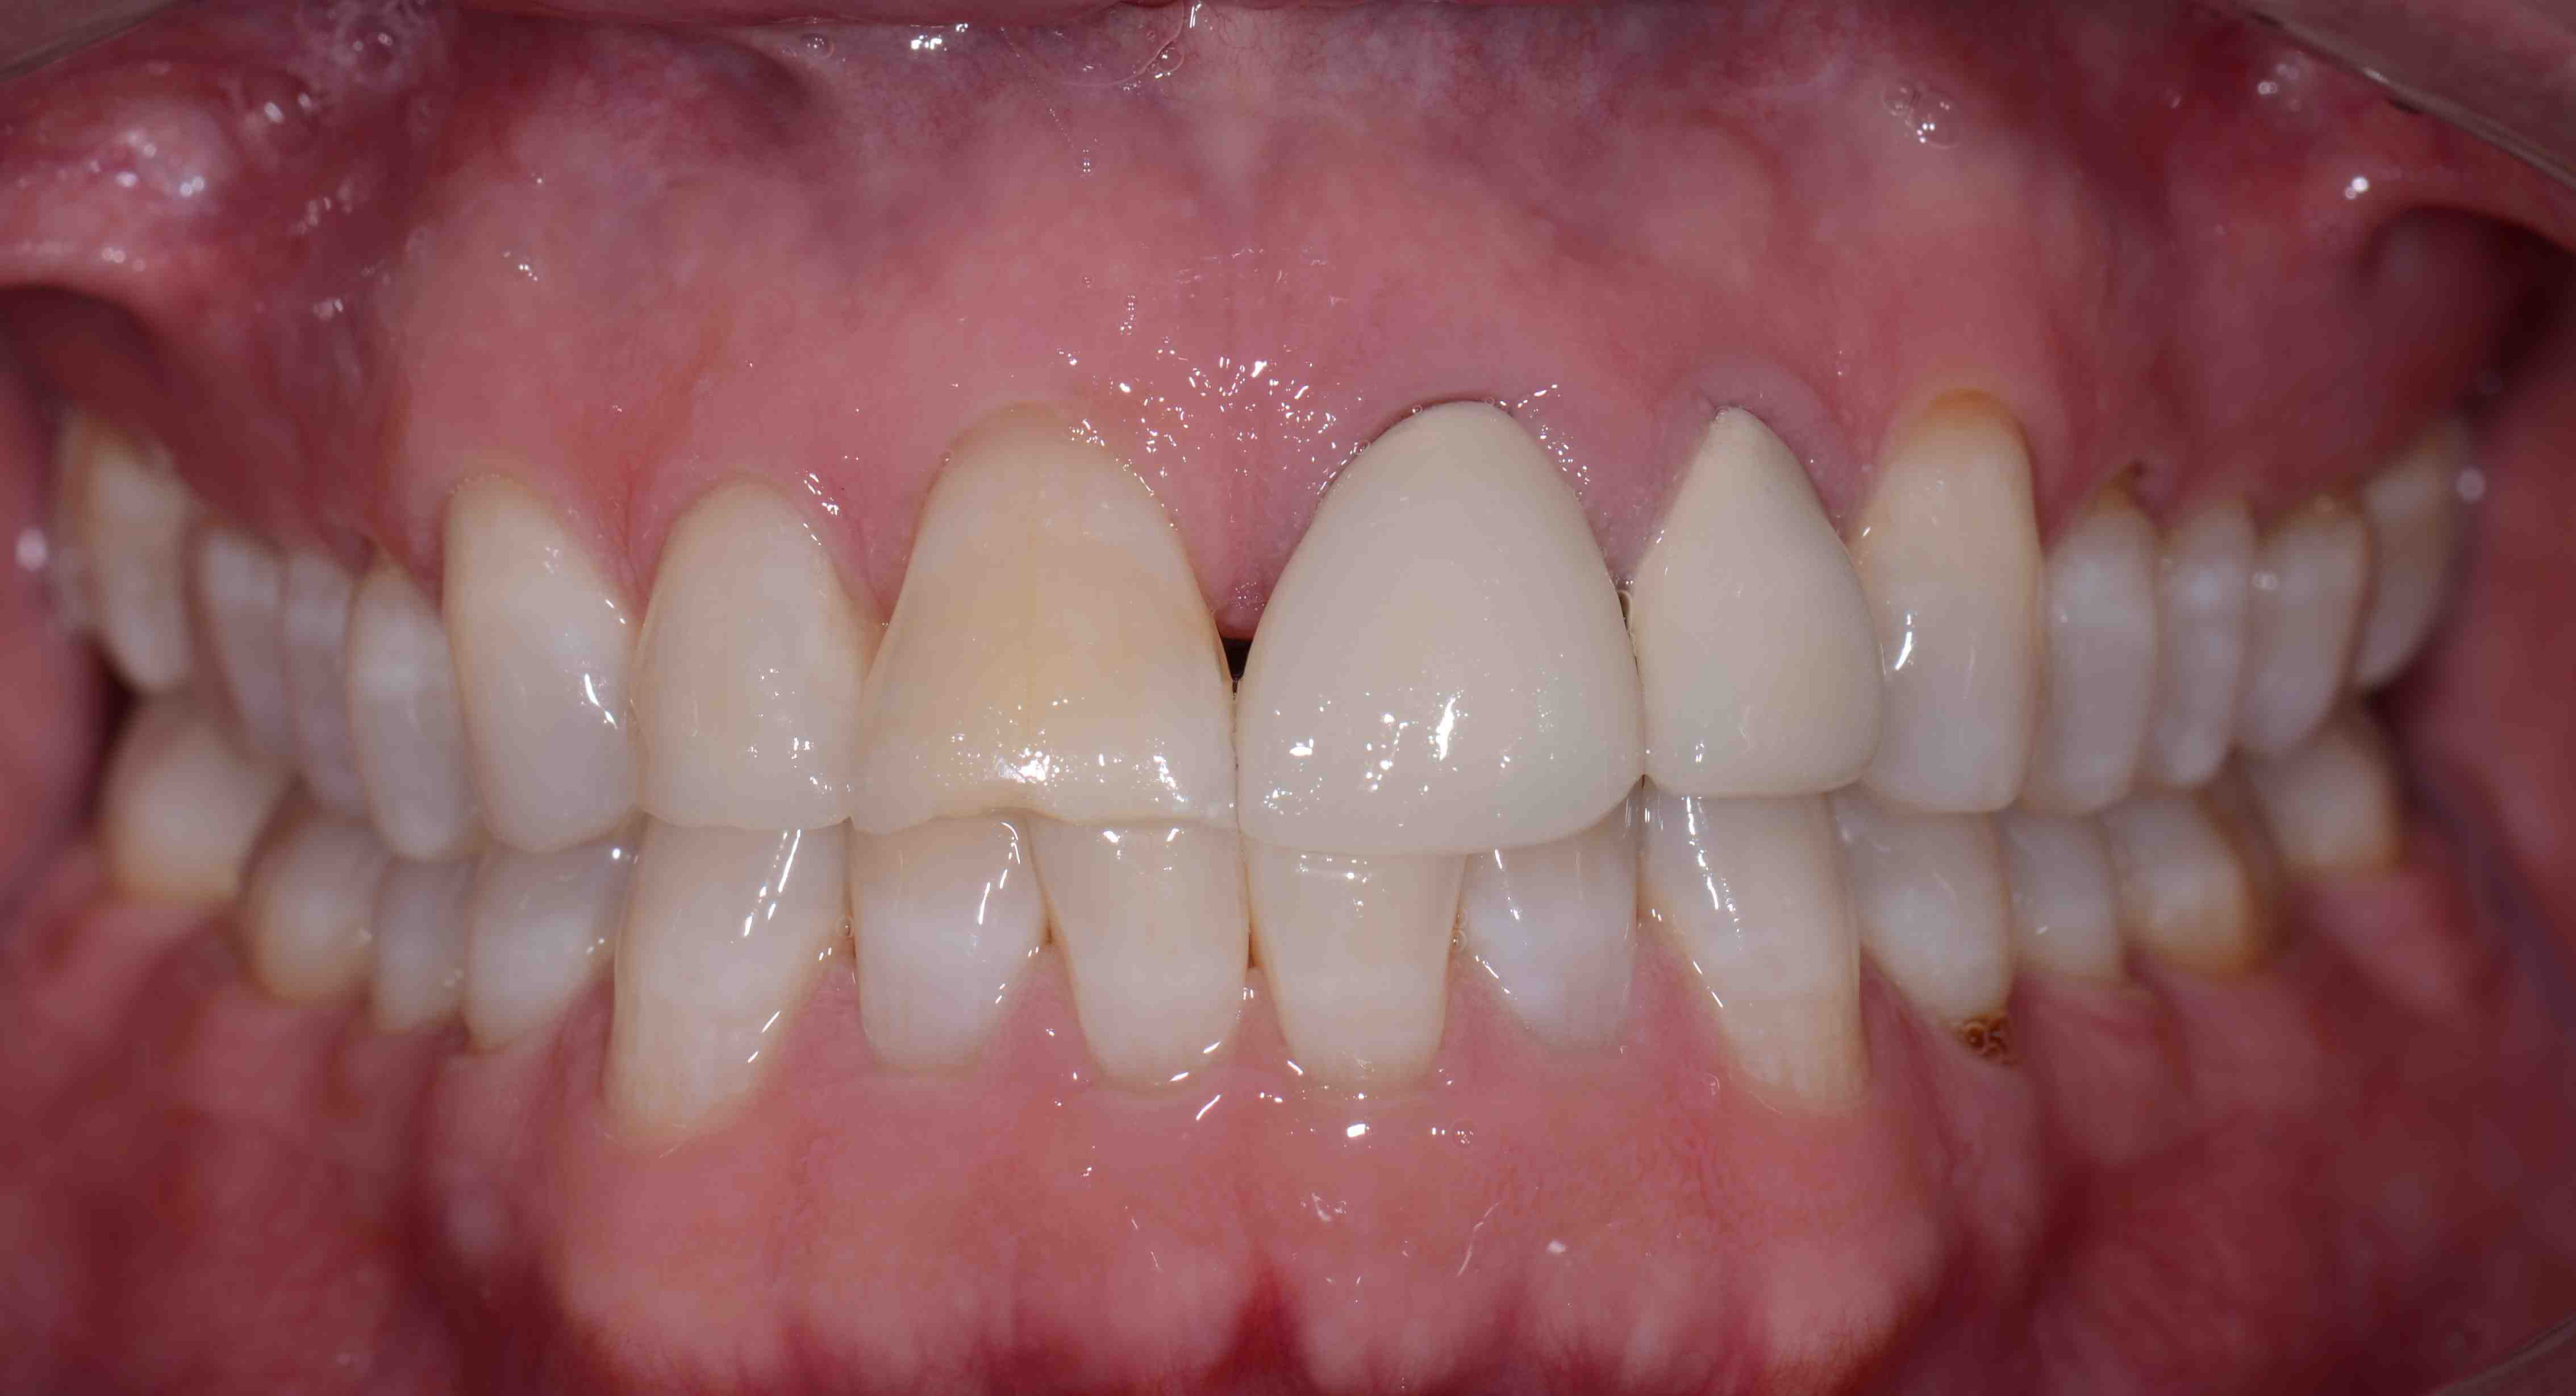 I Don't Want My Teeth To Look Like Crowns